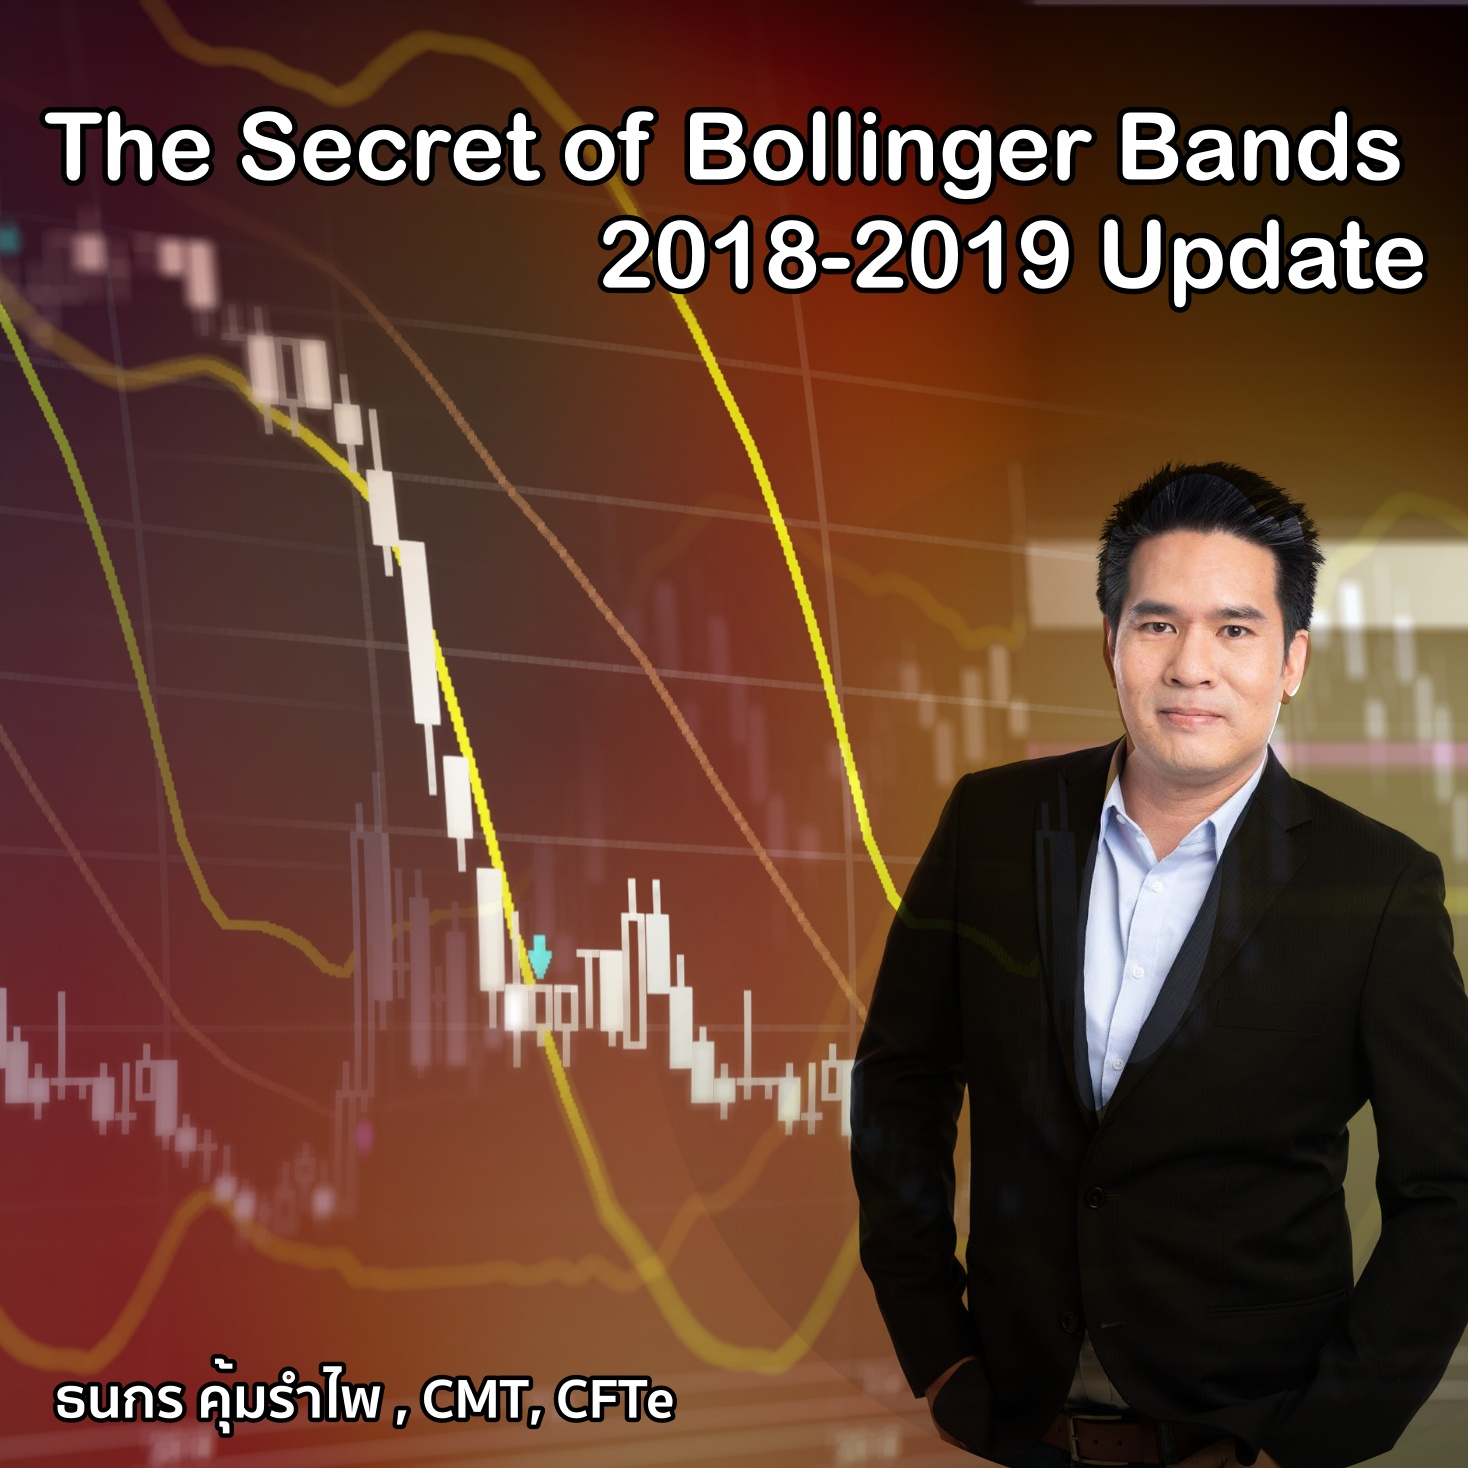 GTA06 The Secret of Bollinger Bands 2018-2019 Update